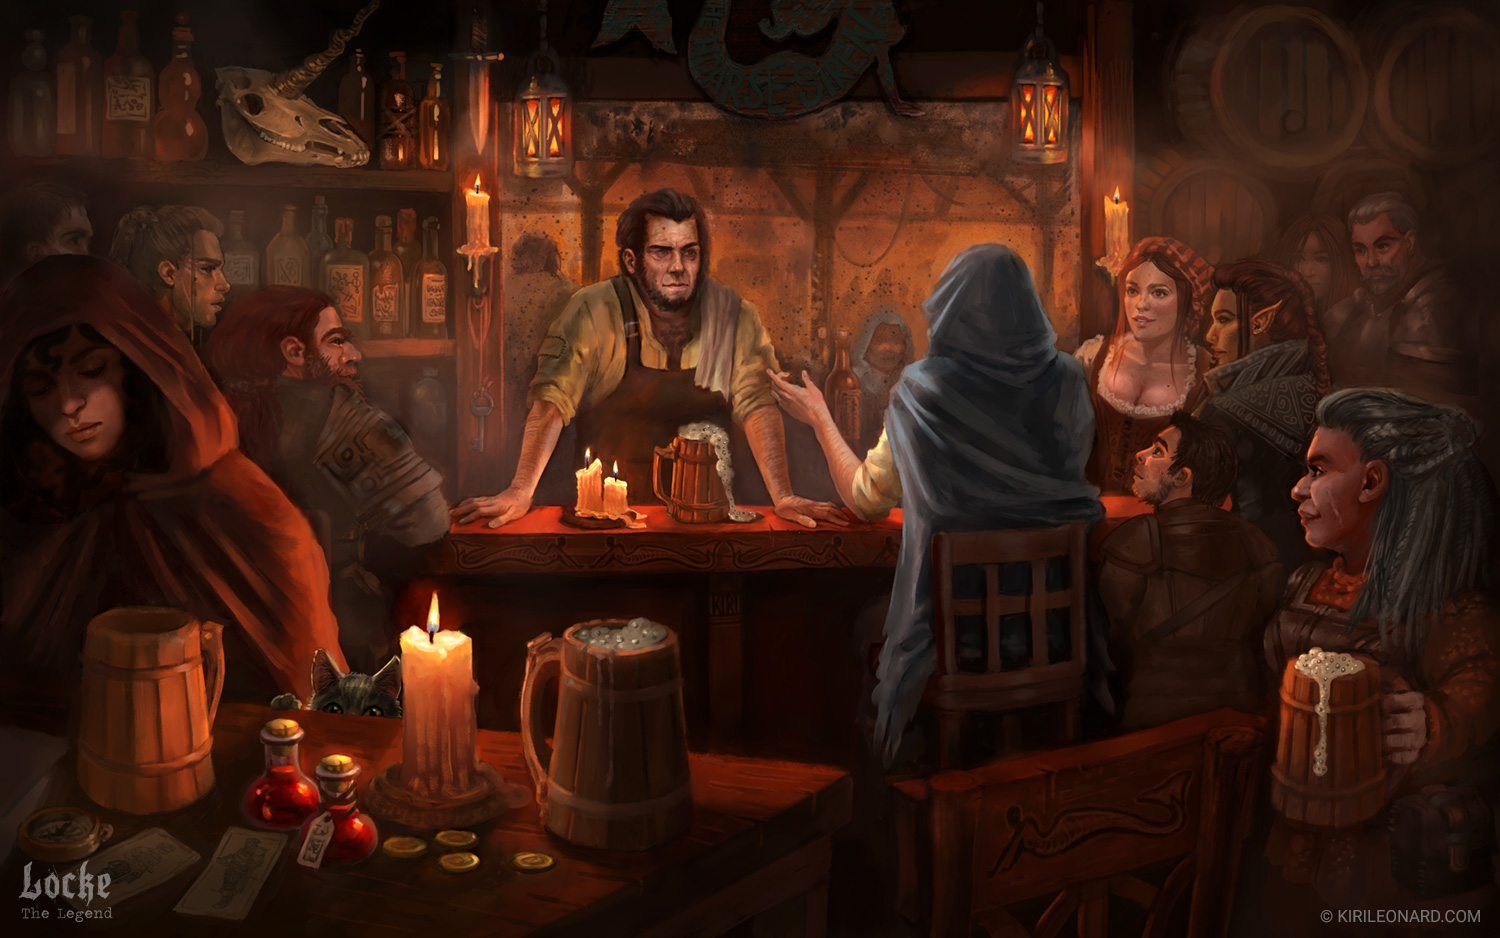 Interior Fantasy Art Tavern Scene for the story of Locke the Legend. Art by Kiri Leonard.